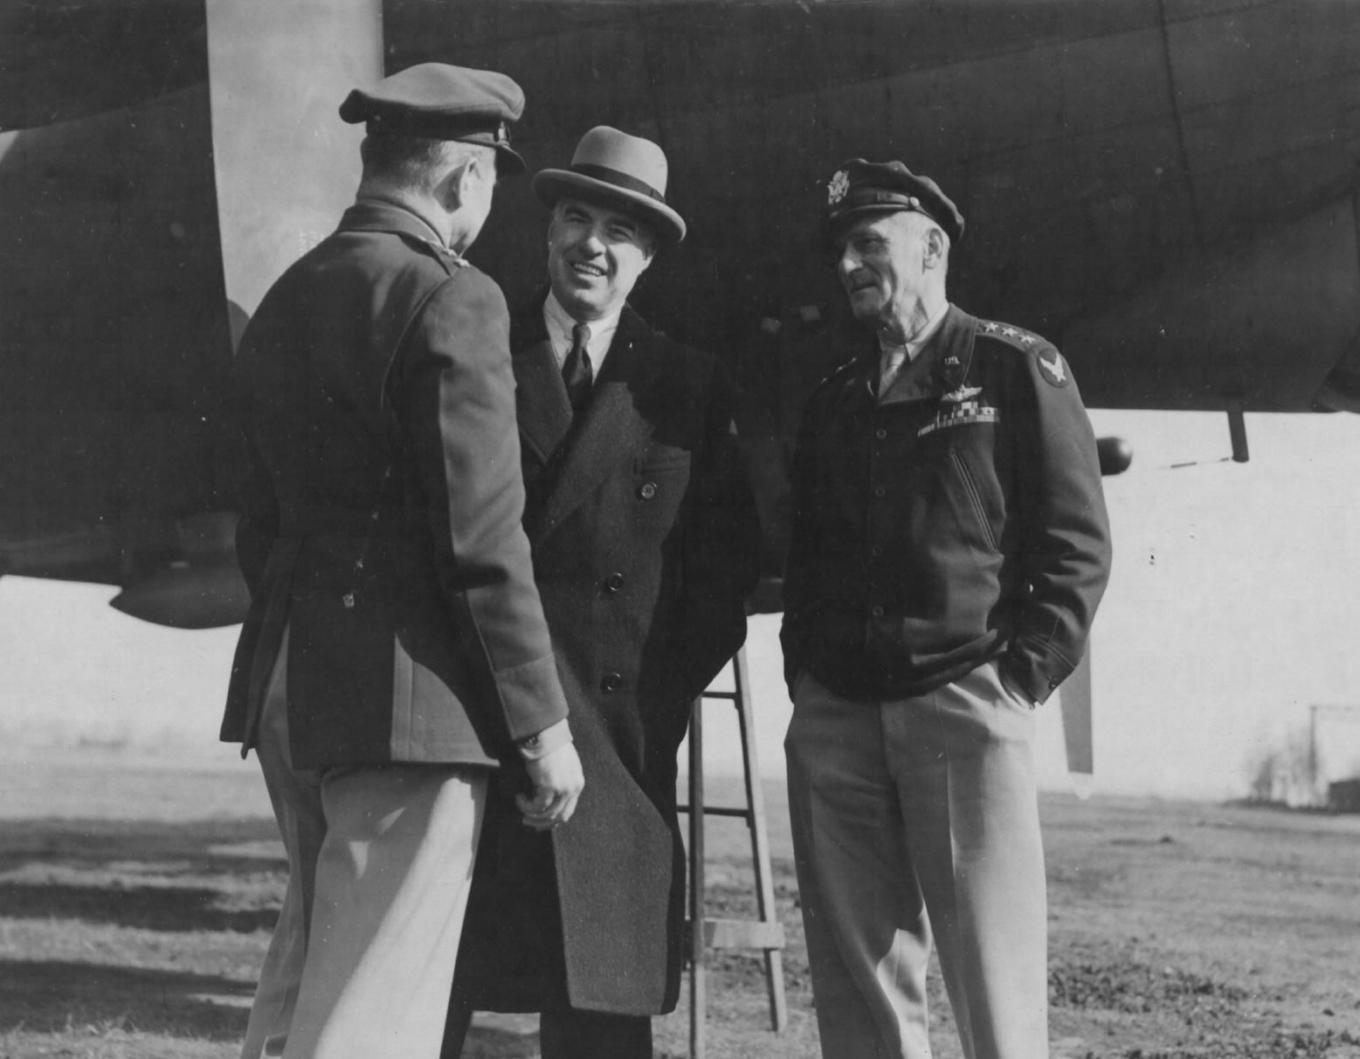 Edward R. Stettinius, Doolittle, Spaatz